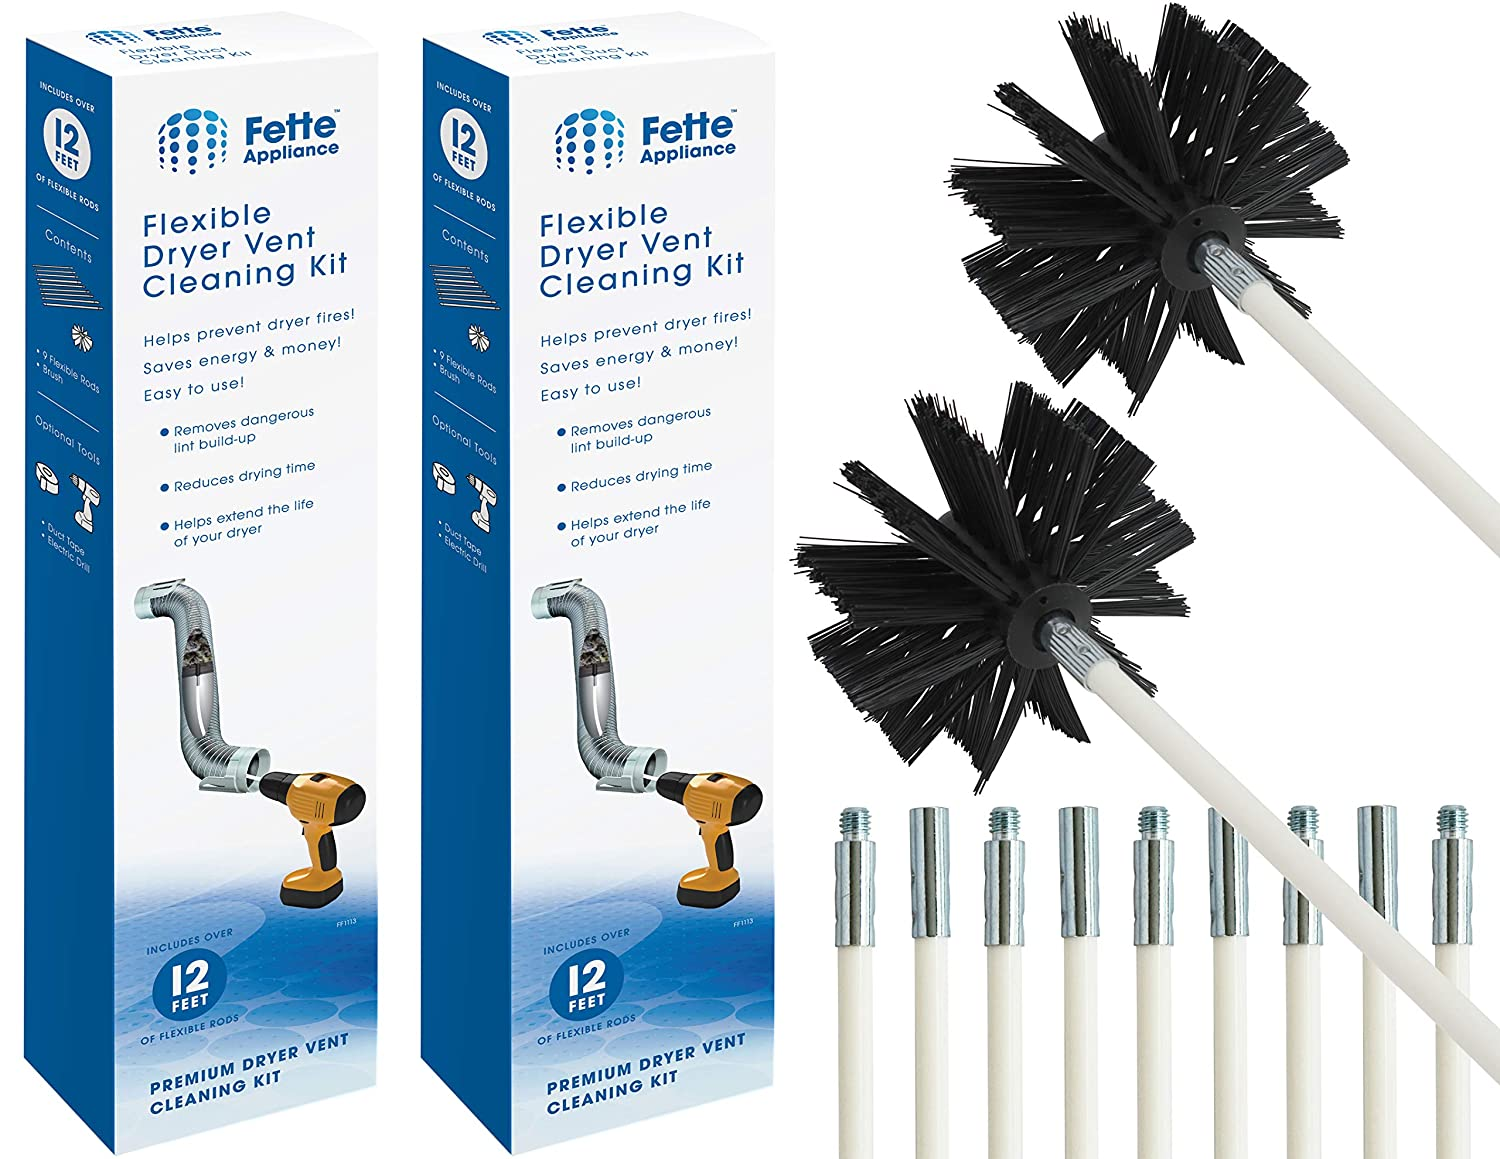 Fette Appliance - Flexible Dryer Vent Cleaning Kit, Lint Remover, 2-Pack Extends up to 24 Feet, Synthetic Brush Head, Use with or Without a Power Drill. Pack of 2